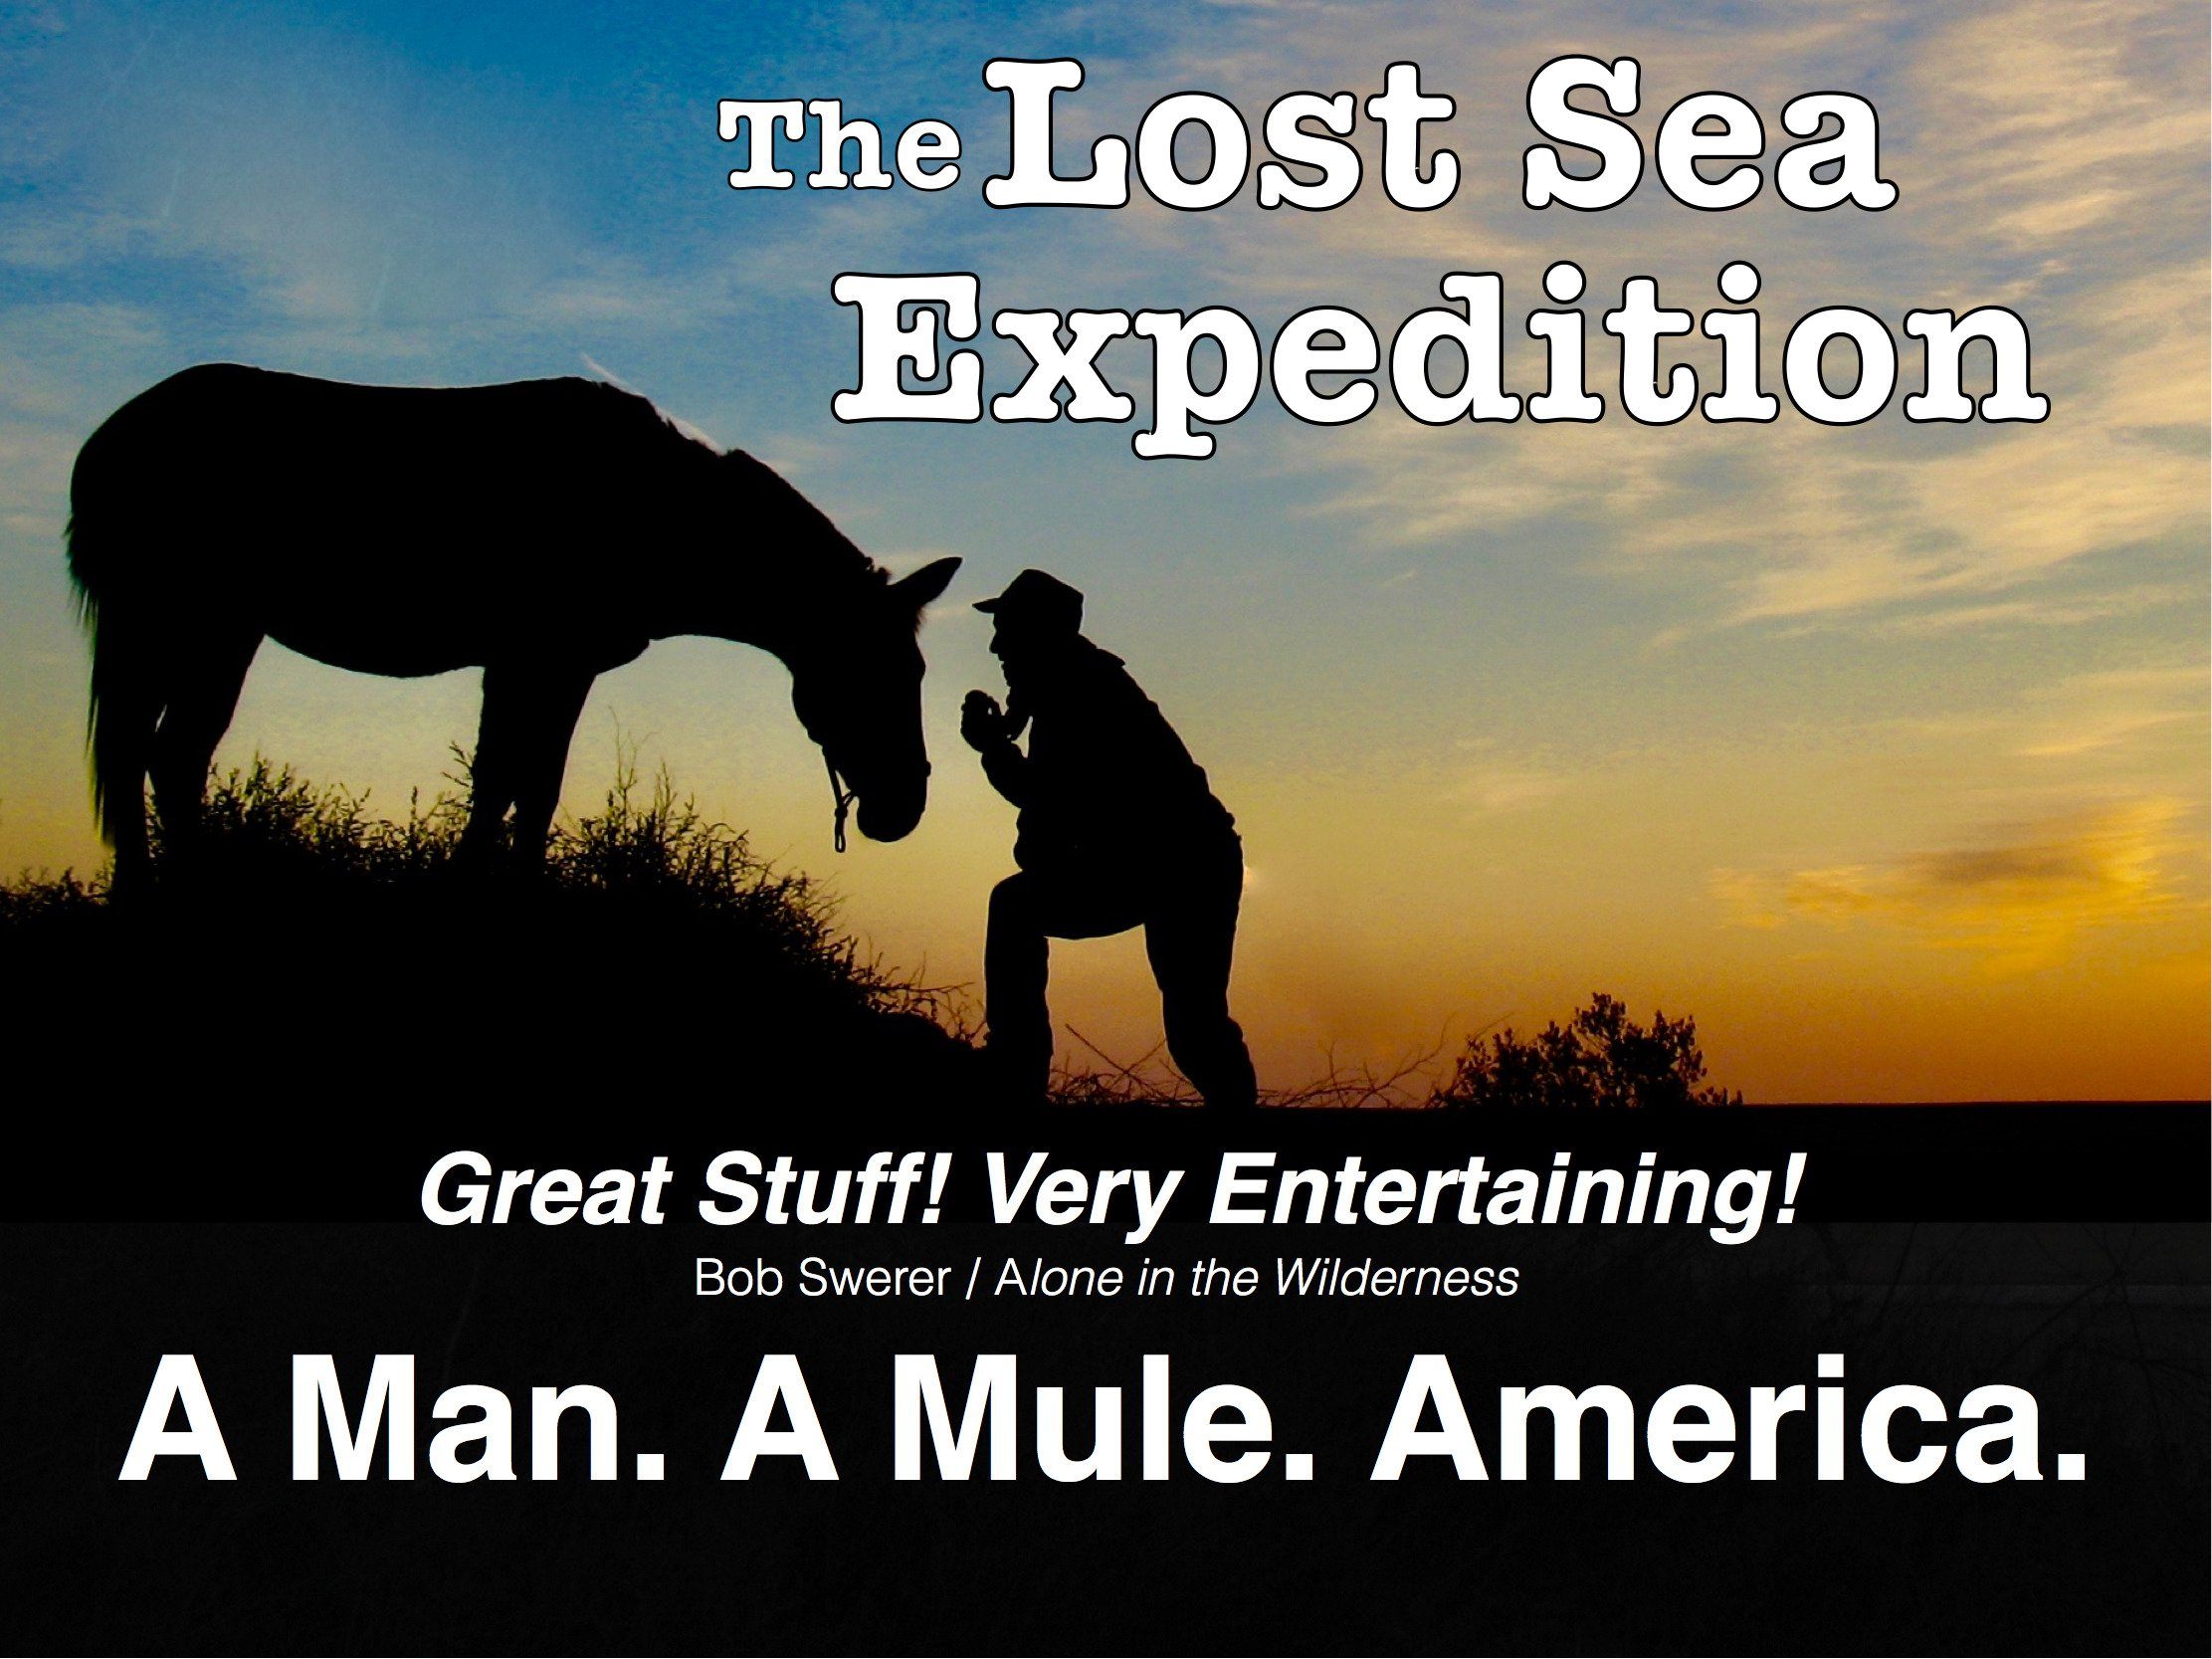 The Lost Sea Expedition